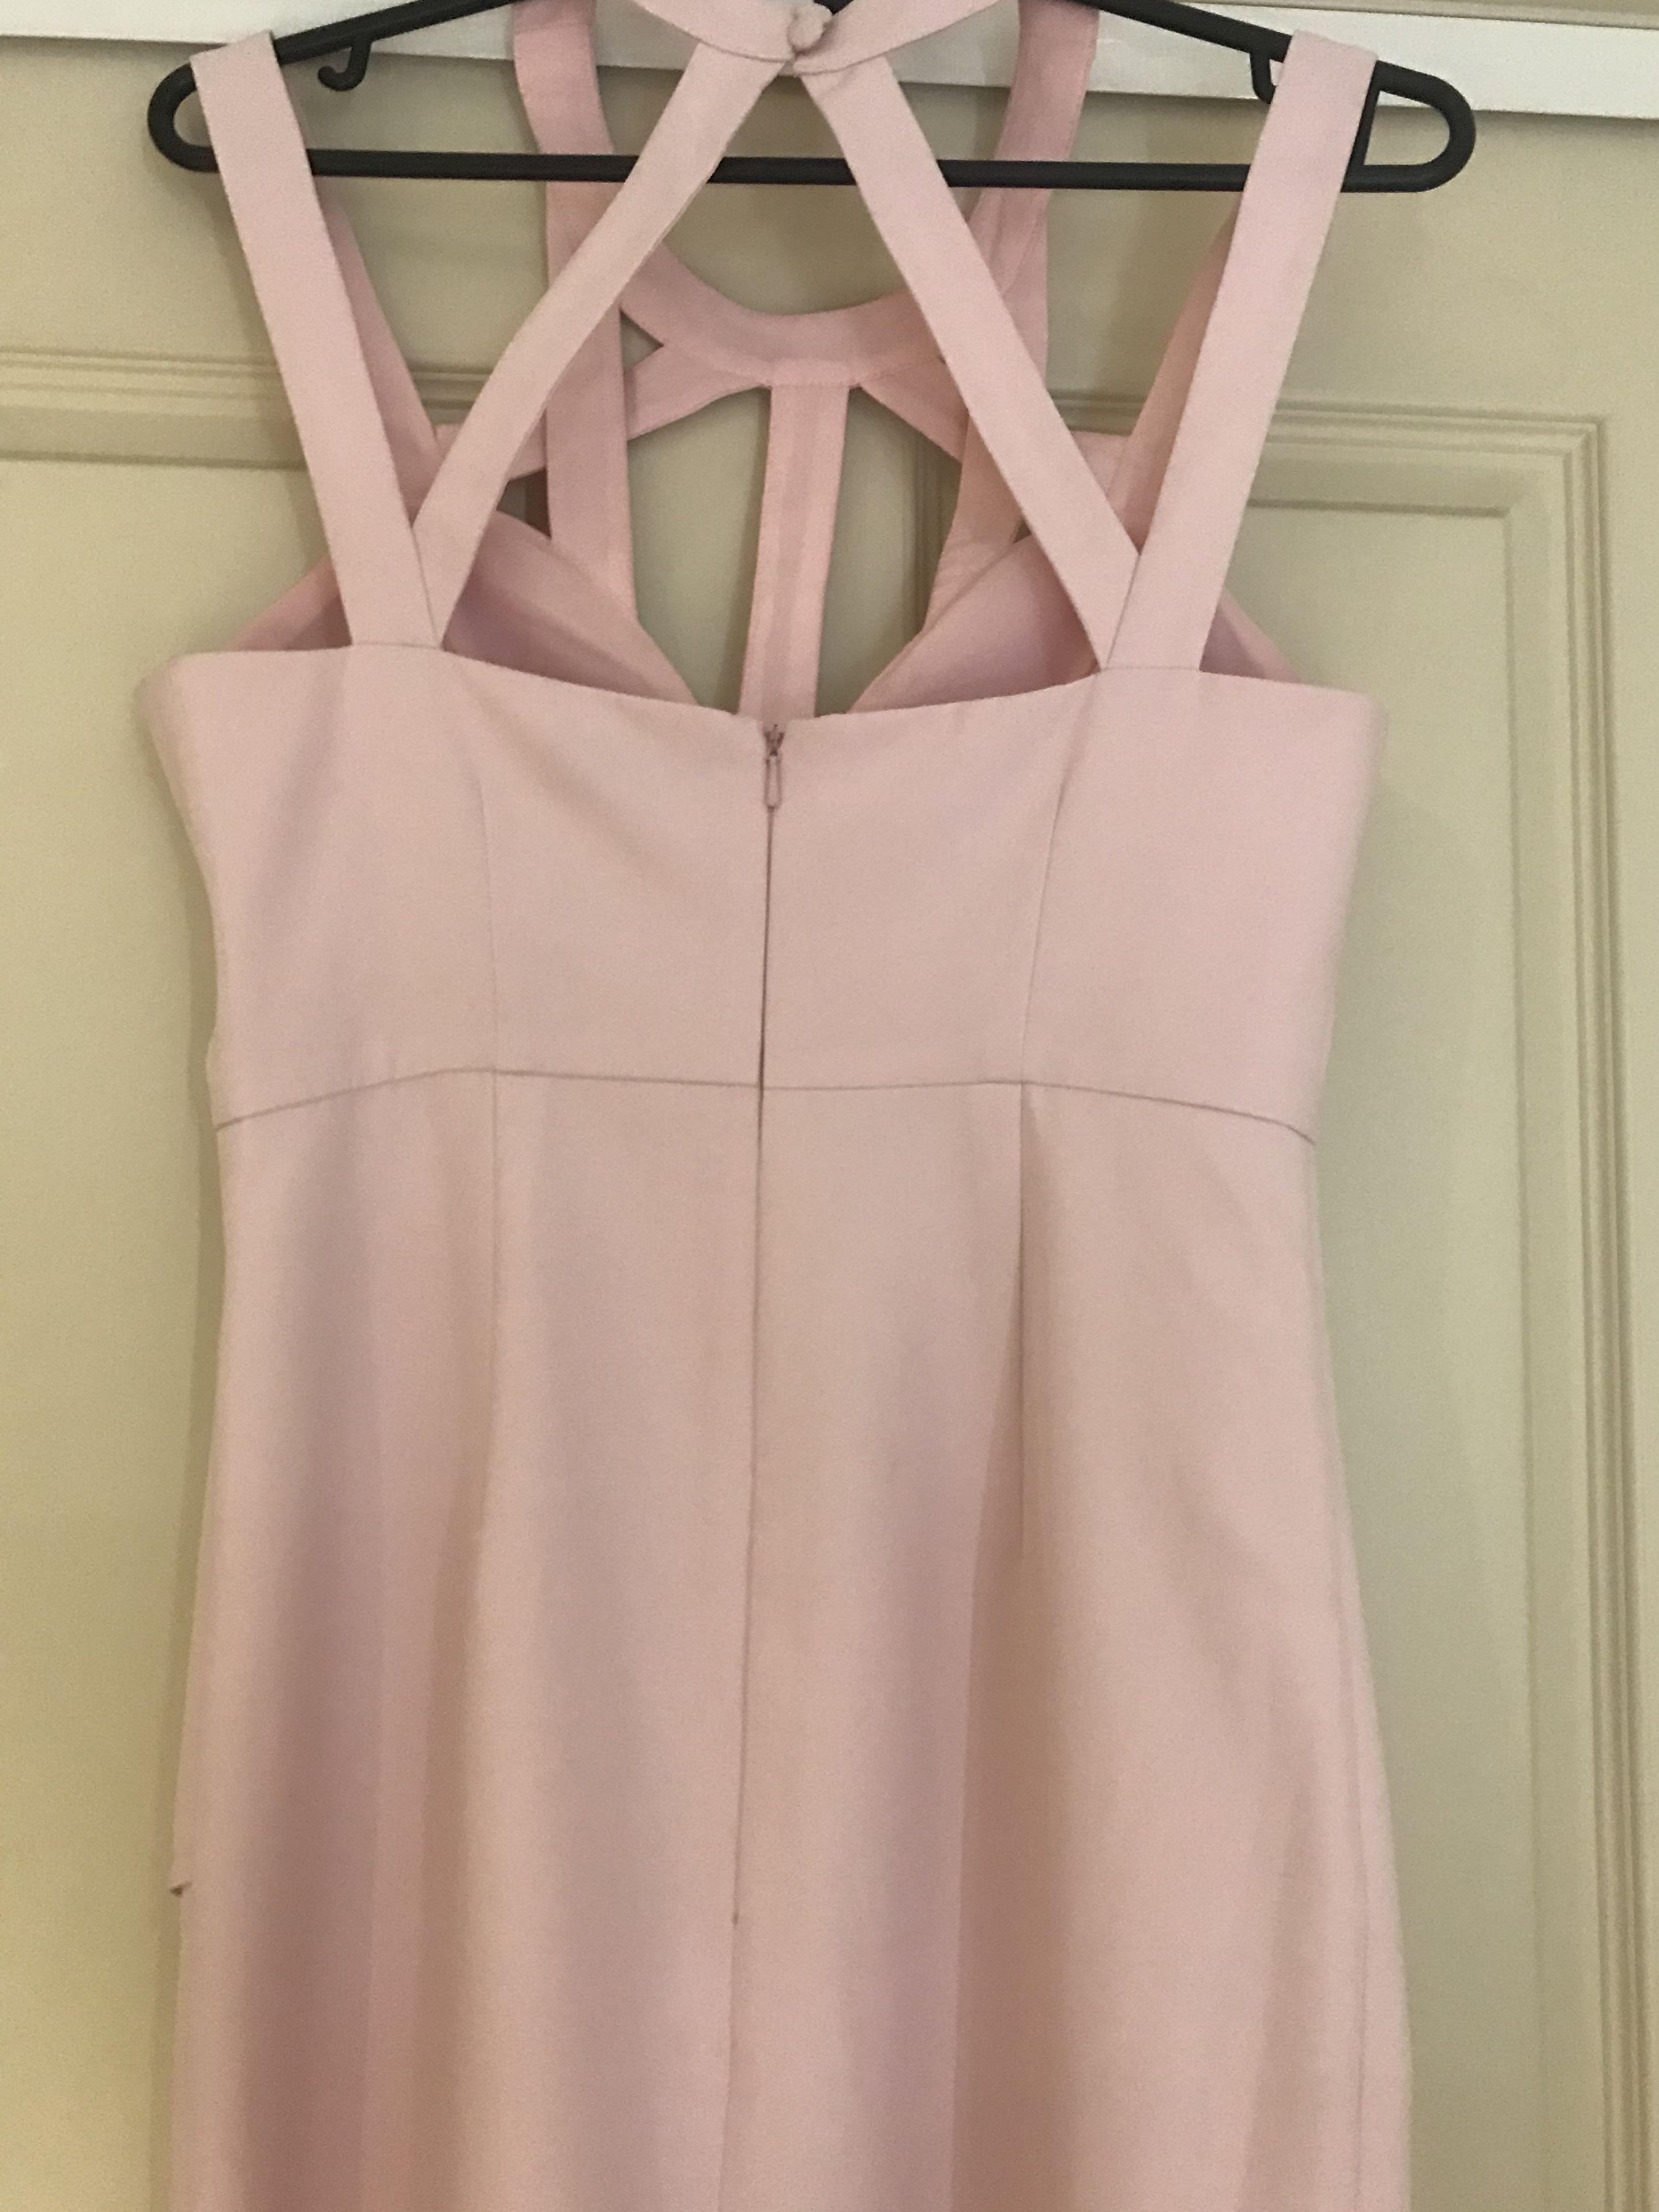 Bariano Lumiere Style L16D13 Baby Pink Evening Dress Size S